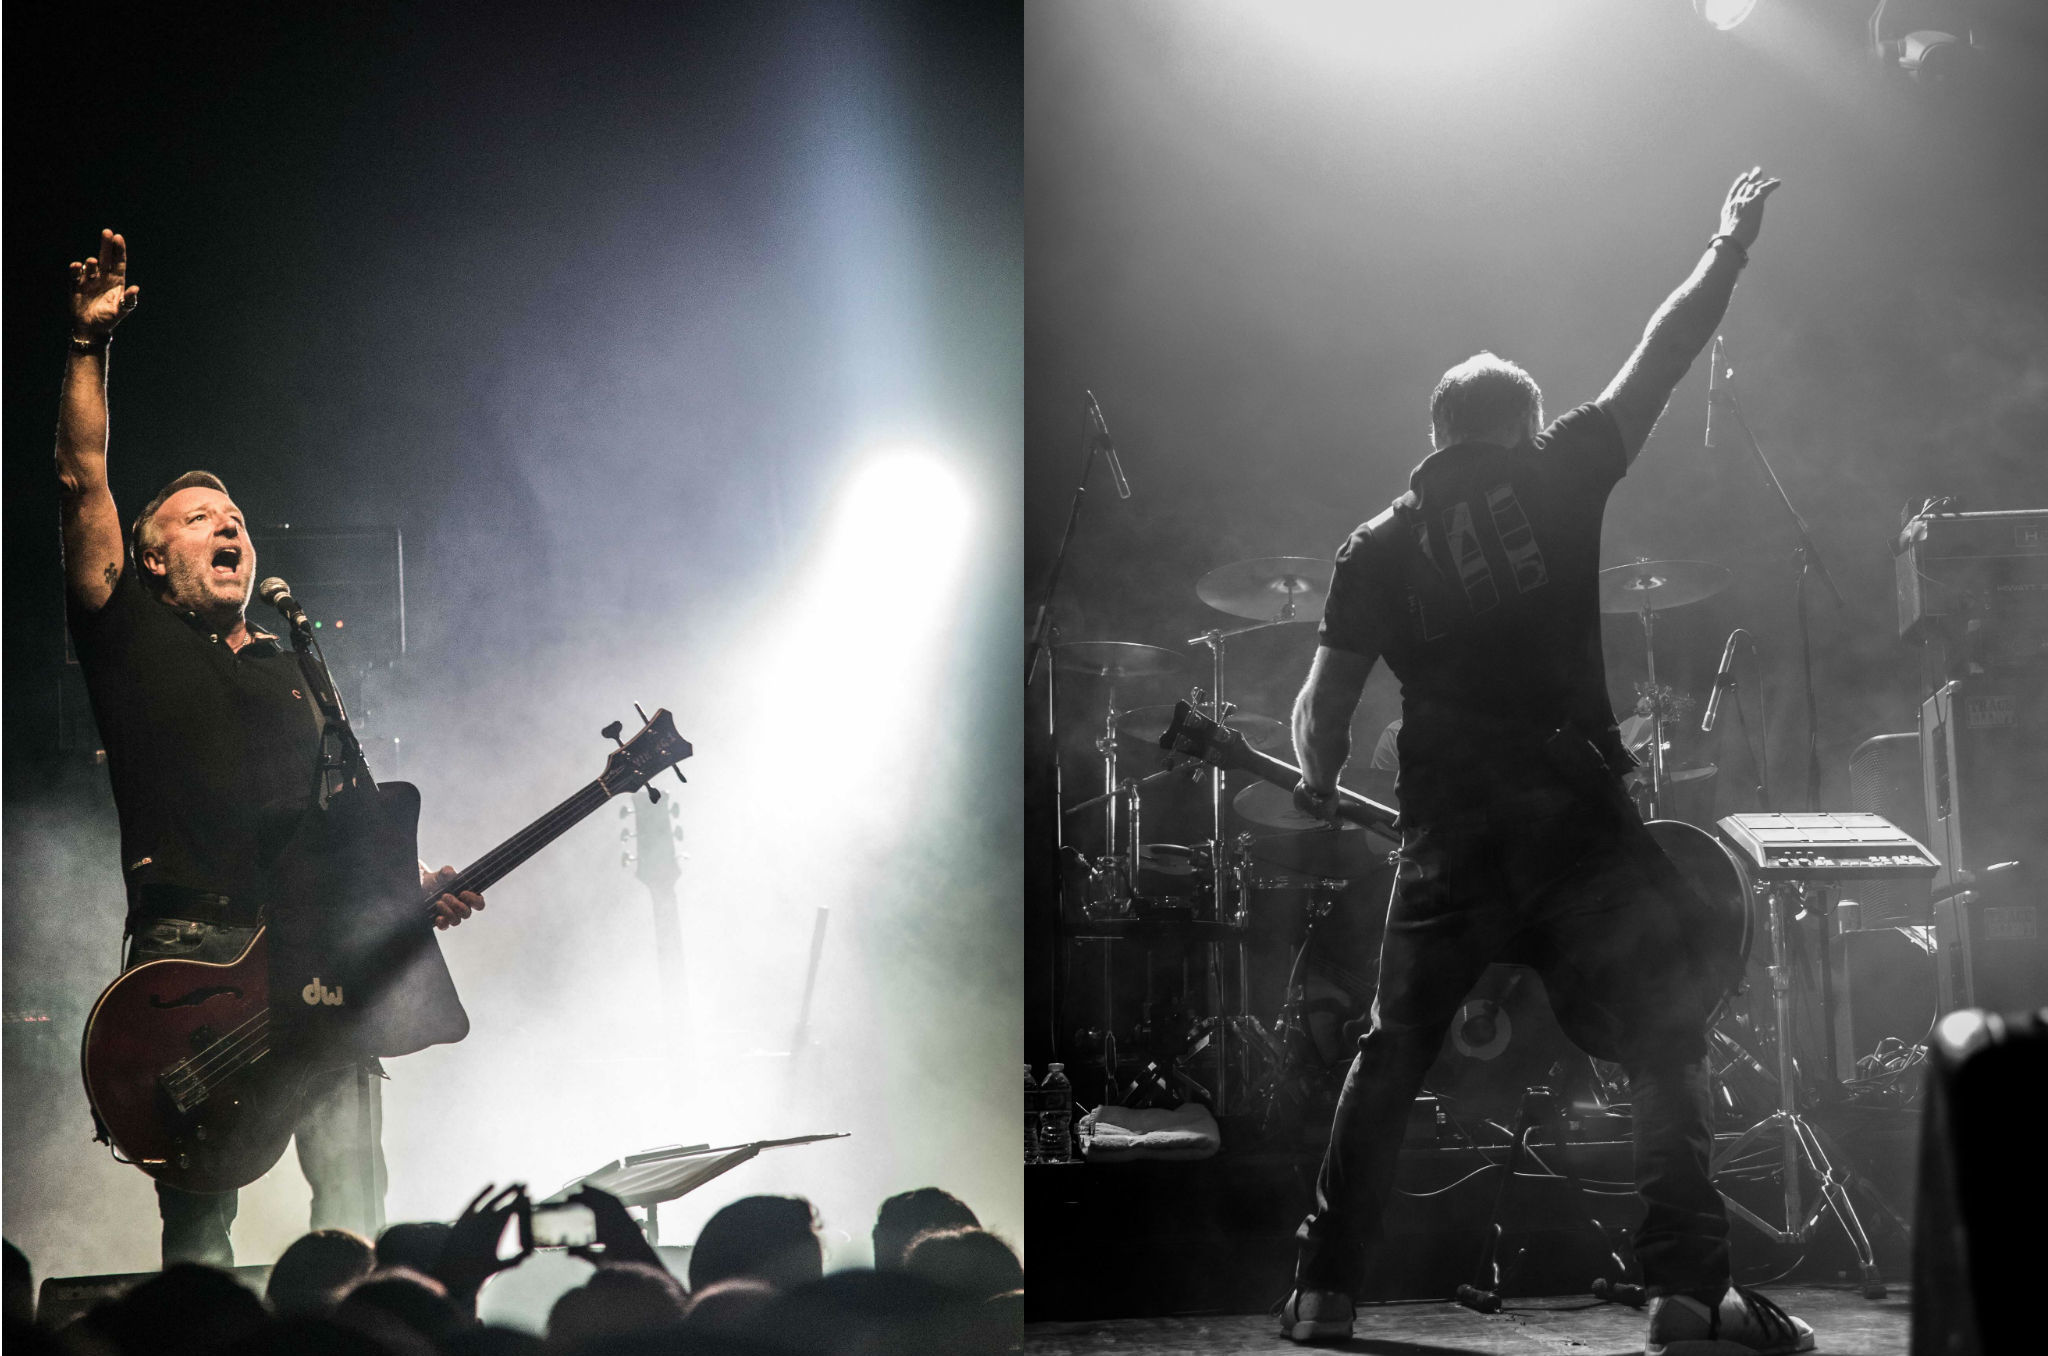 Peter Hook at The Ritz